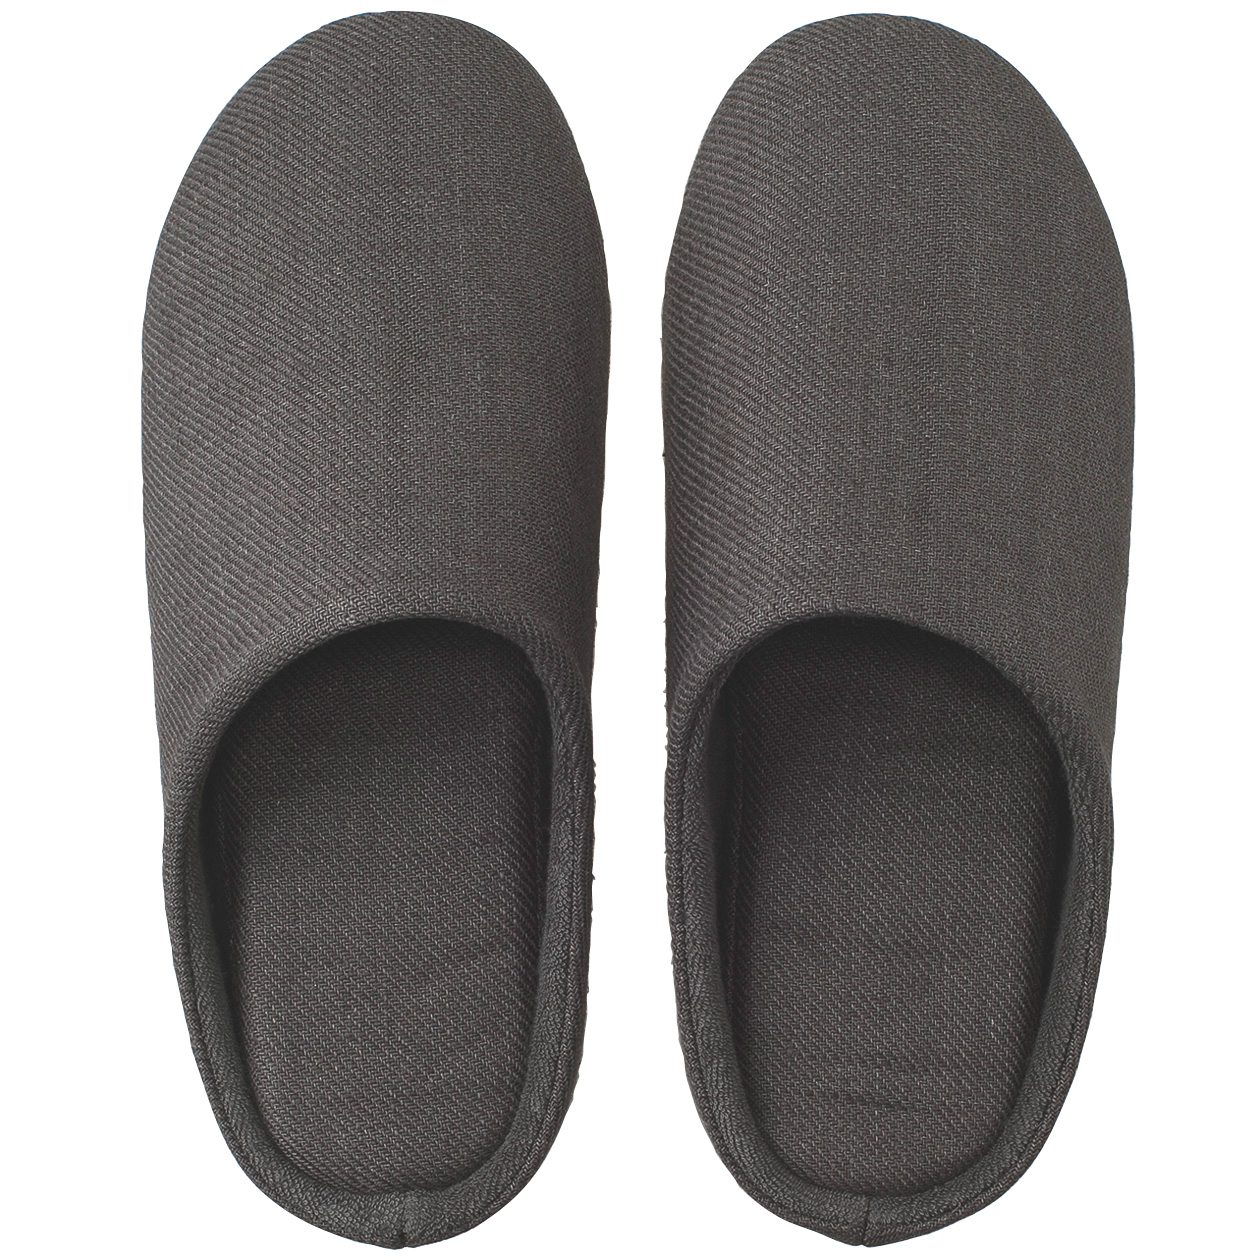 LINEN TWILL CUSHION SLIPPER L DARK GRAY